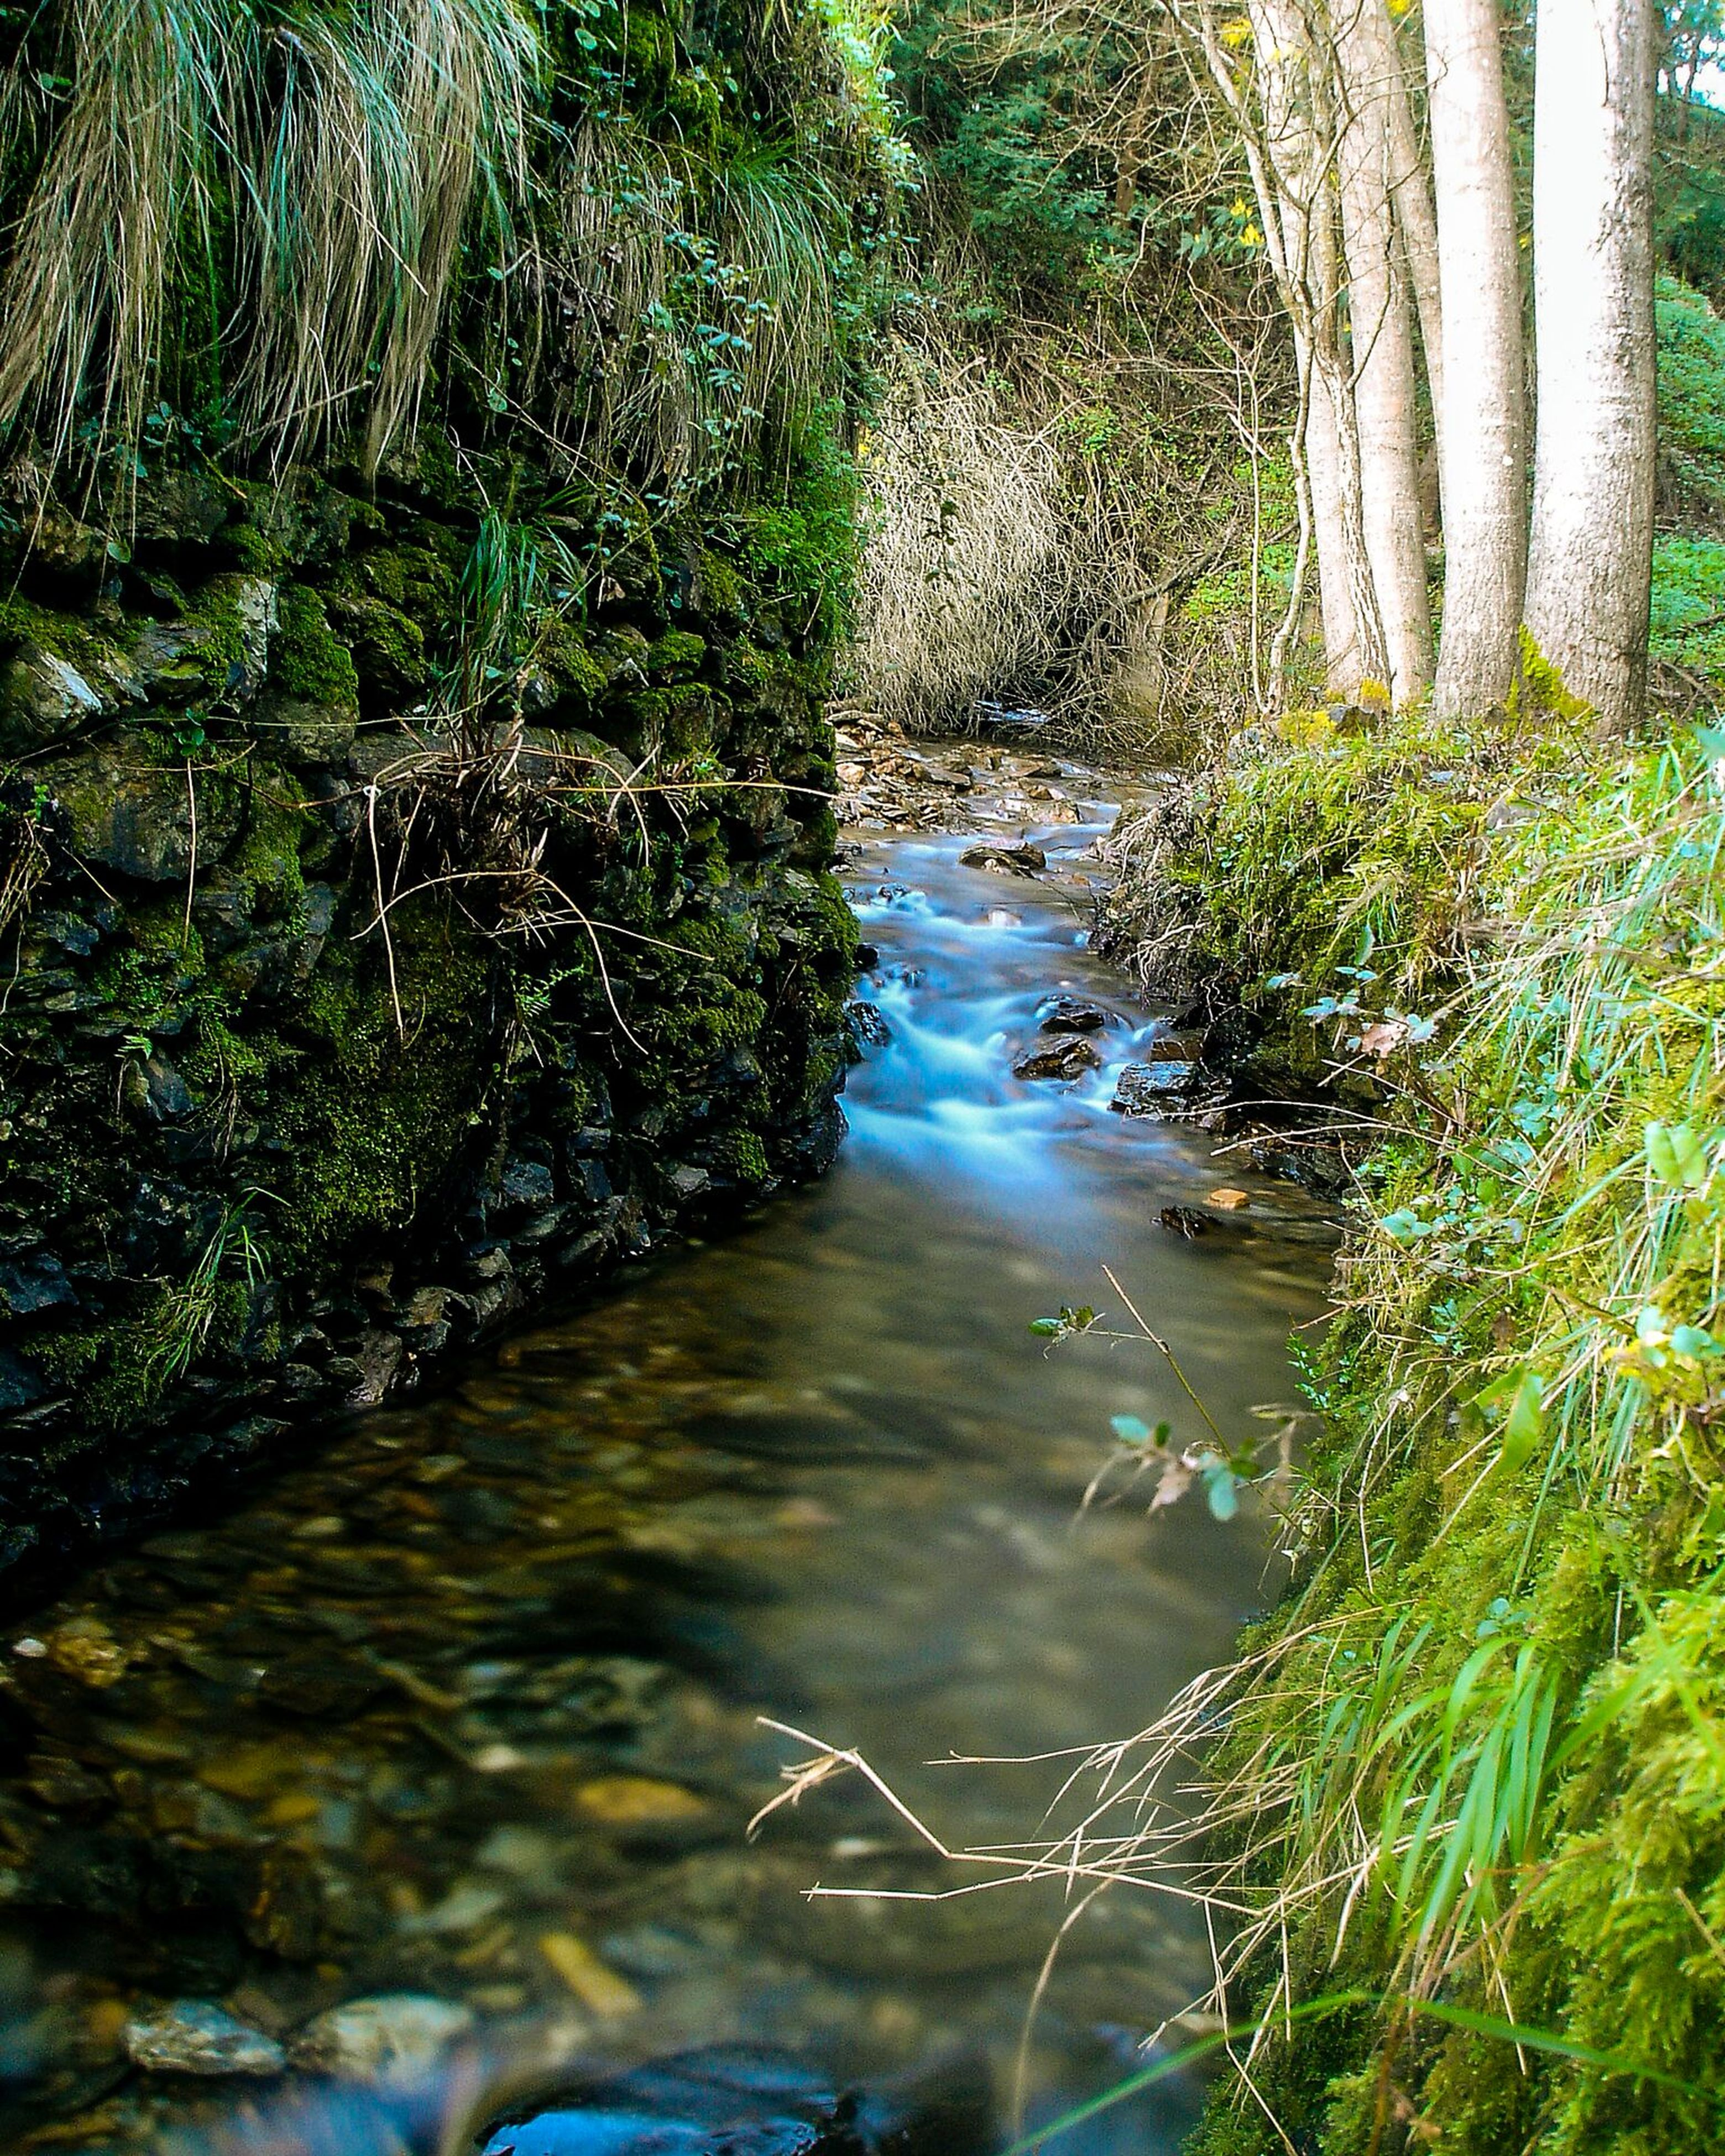 water, tree, stream, forest, tranquility, nature, reflection, green color, tranquil scene, flowing water, growth, beauty in nature, scenics, flowing, plant, waterfront, day, river, sunlight, high angle view